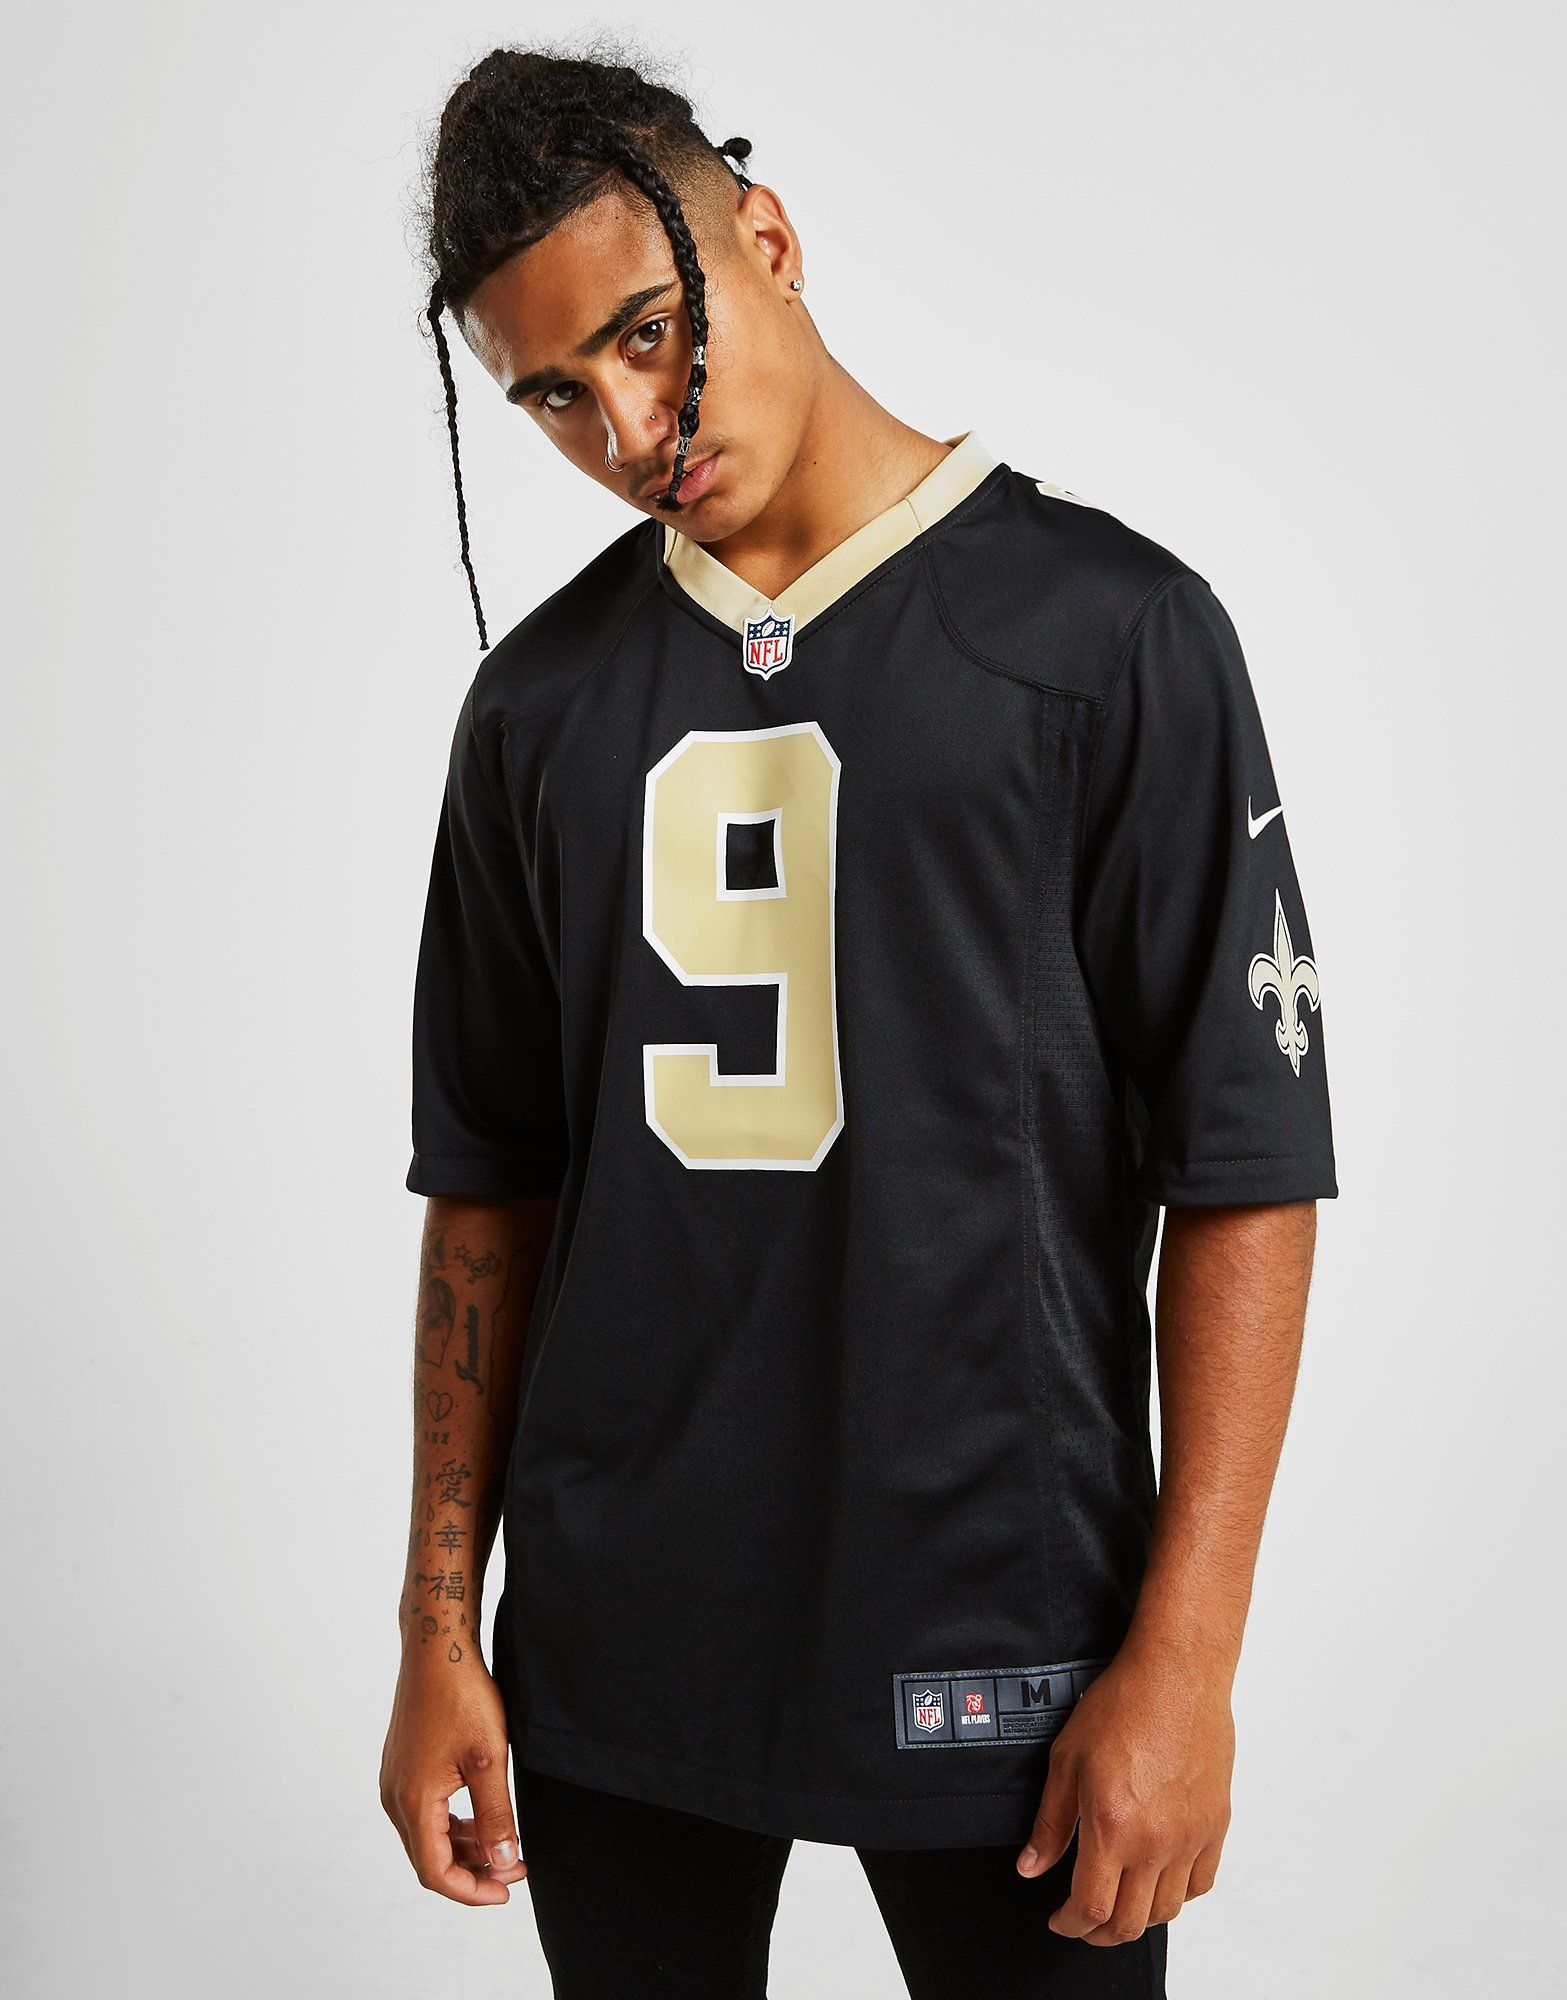 size 40 cef25 86fa7 Nike NFL New Orleans Saints Game (Drew Brees) Men's American Football  Jersey | JD Sports